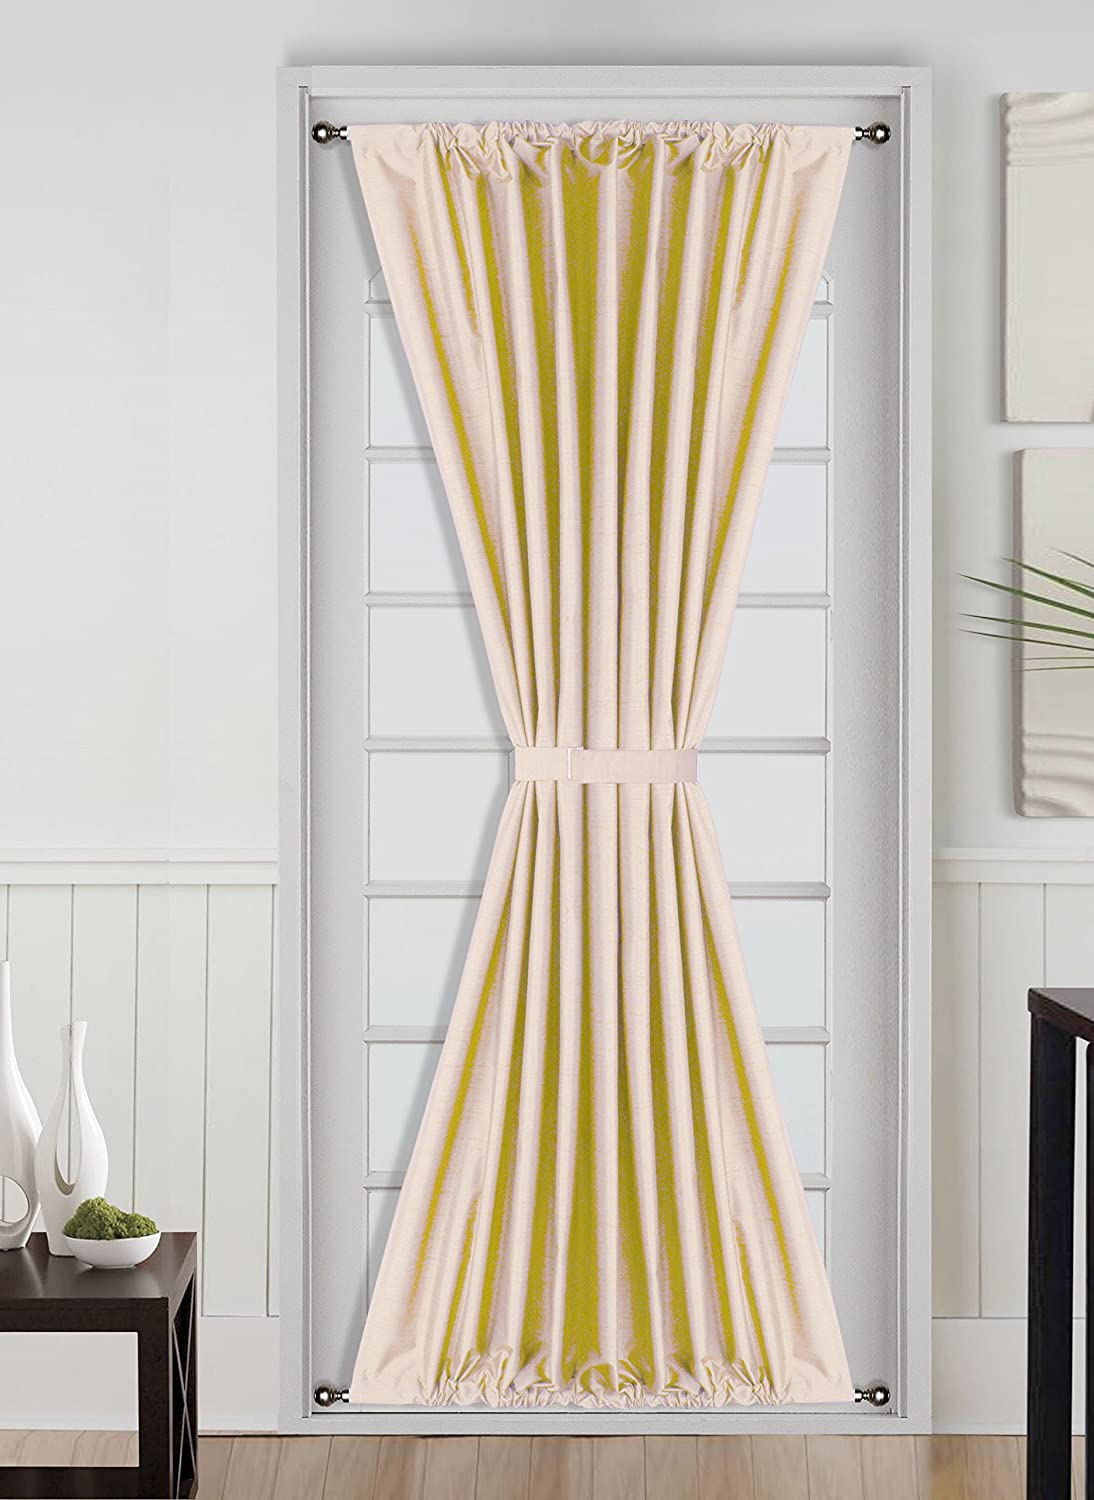 Simple French Door Window Treatments For A Unique Home Swift - French door window treatments